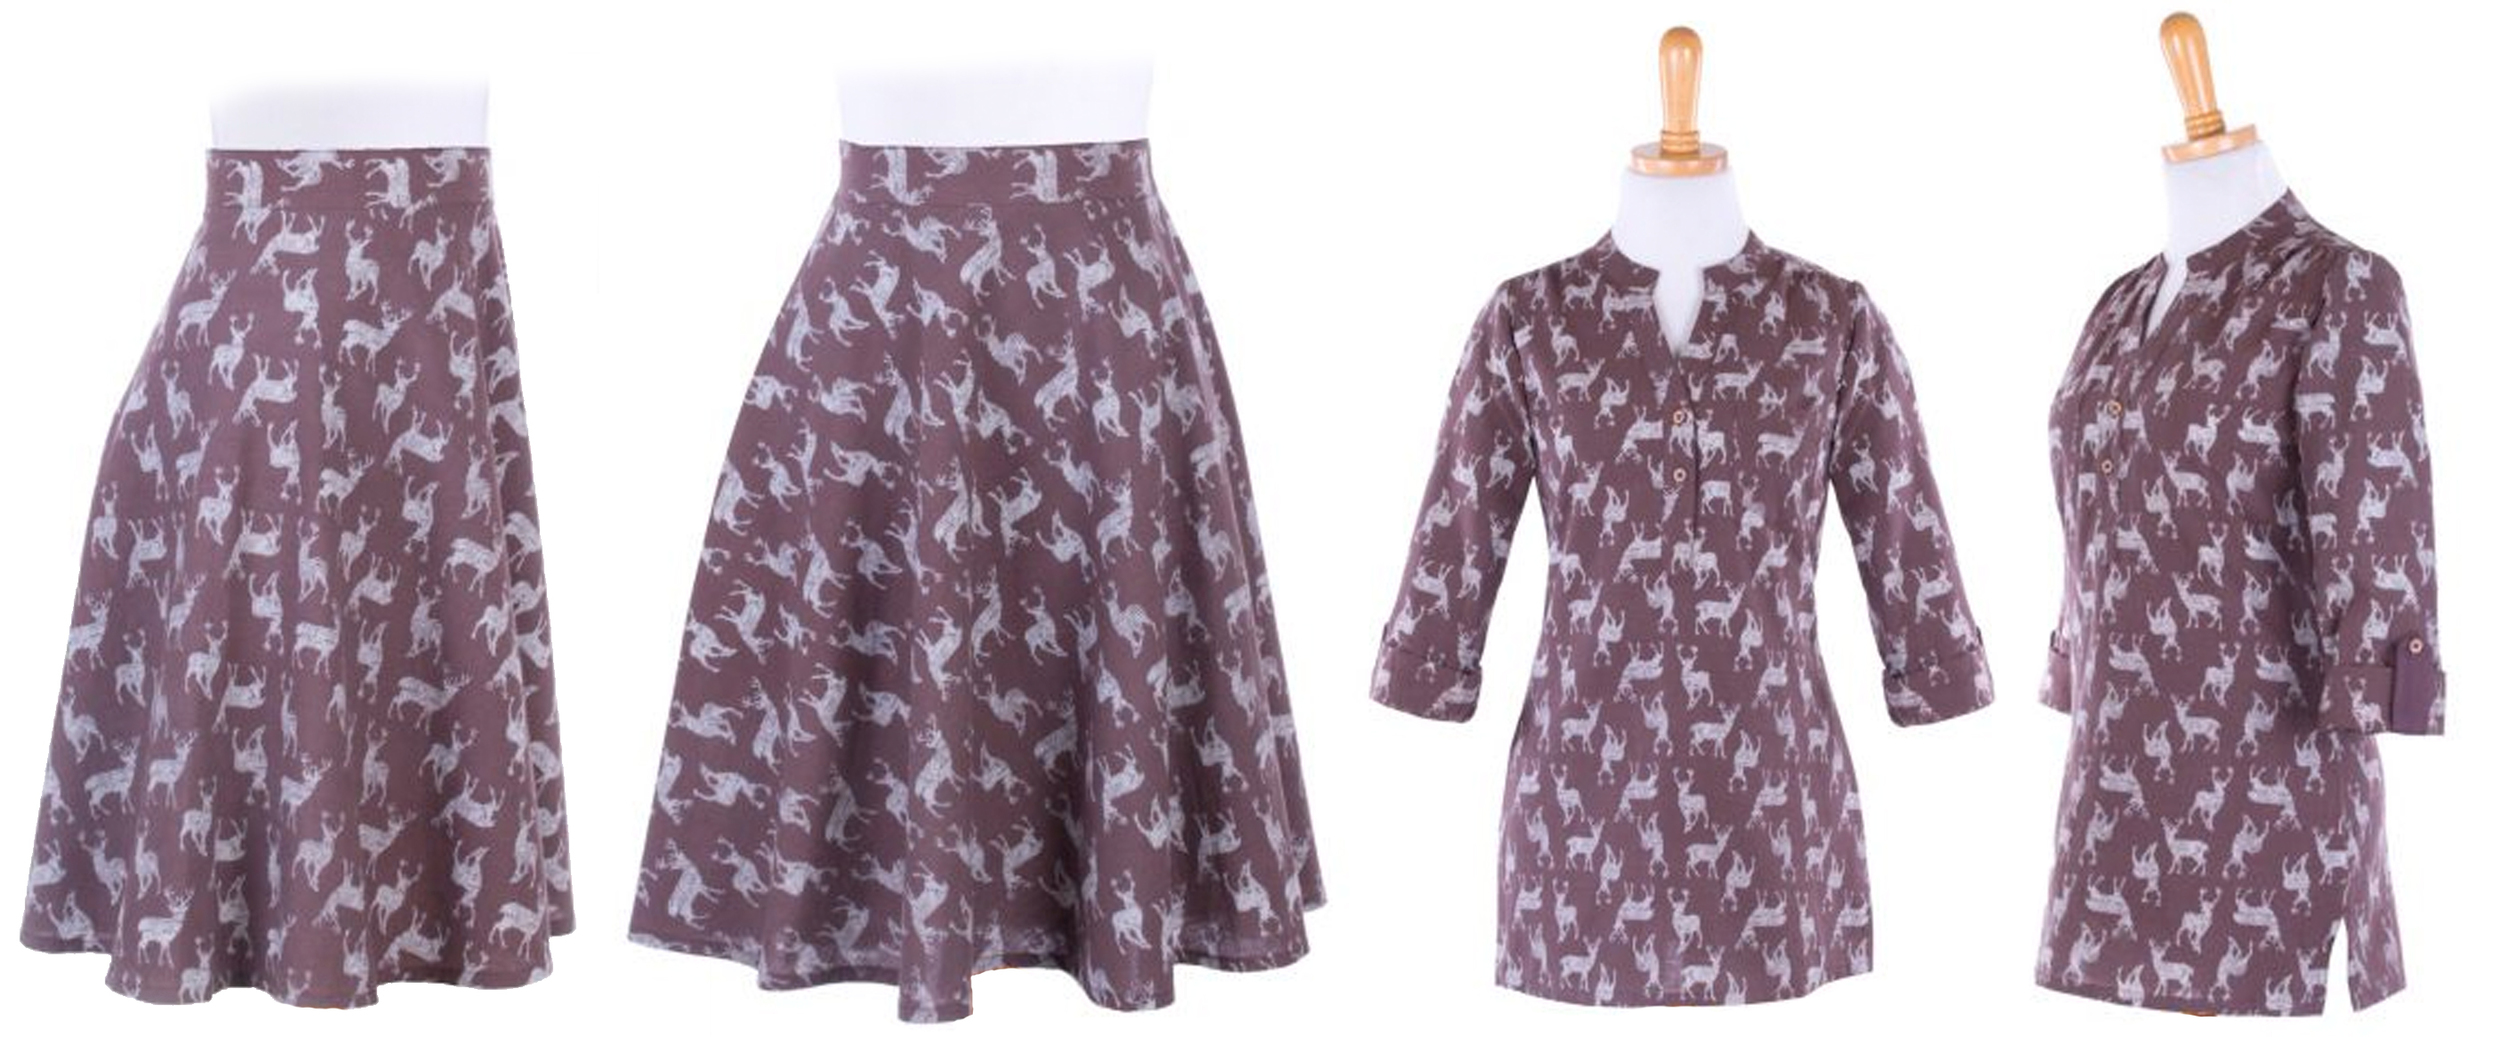 Buck Stops Here  skirt and the  Near and Deer  top.